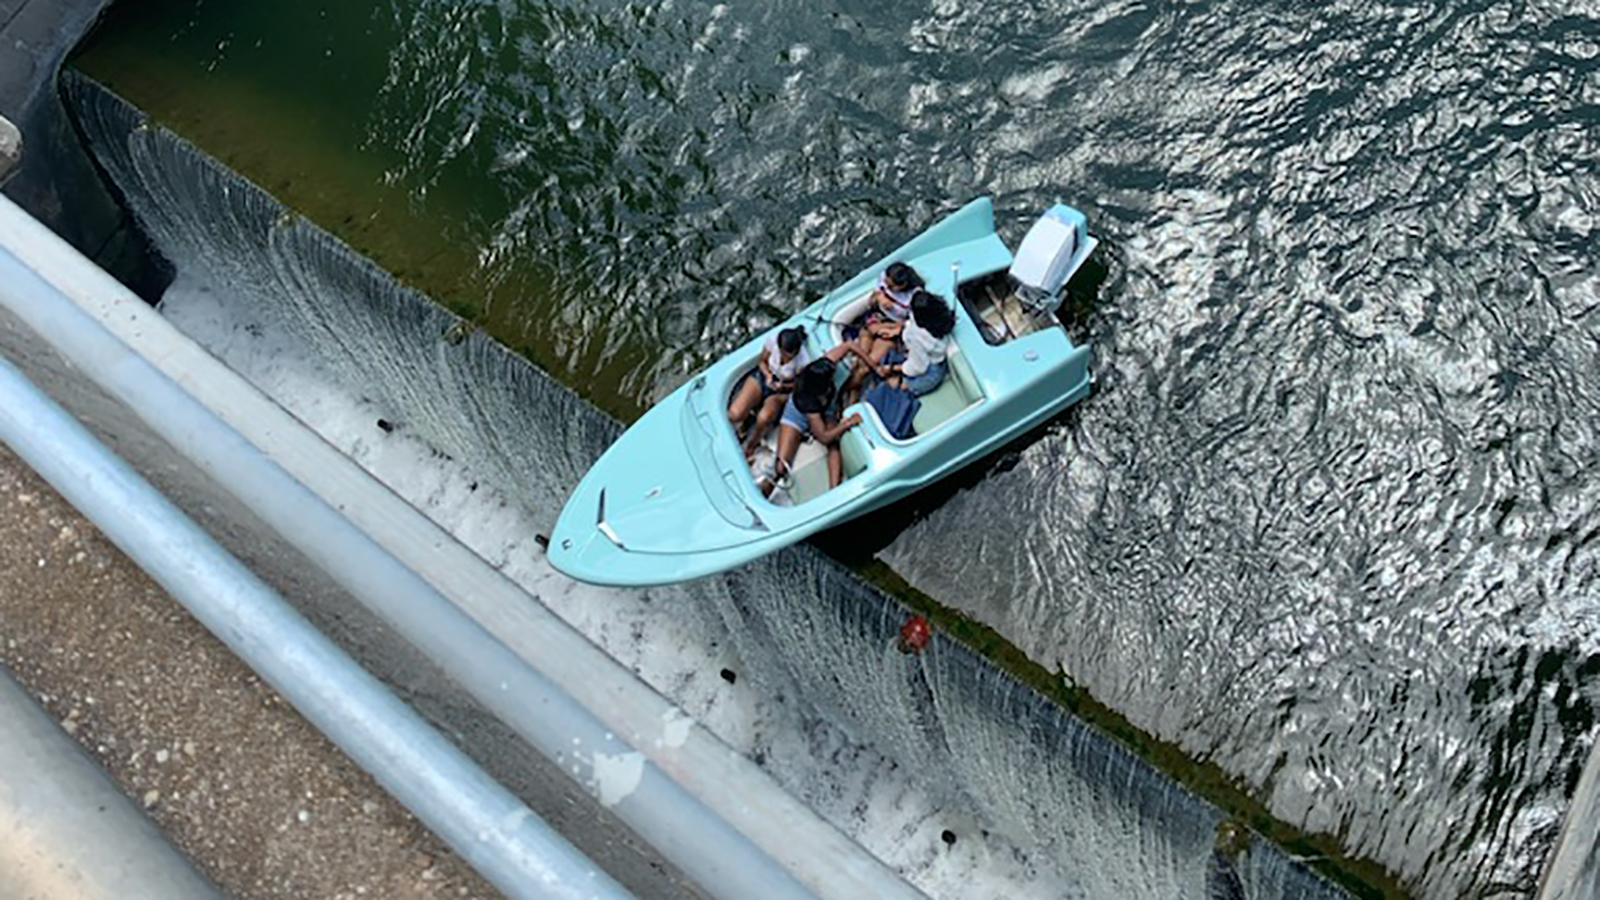 Four people were rescued off a boat 'teetering' at the edge of a Texas dam, police say